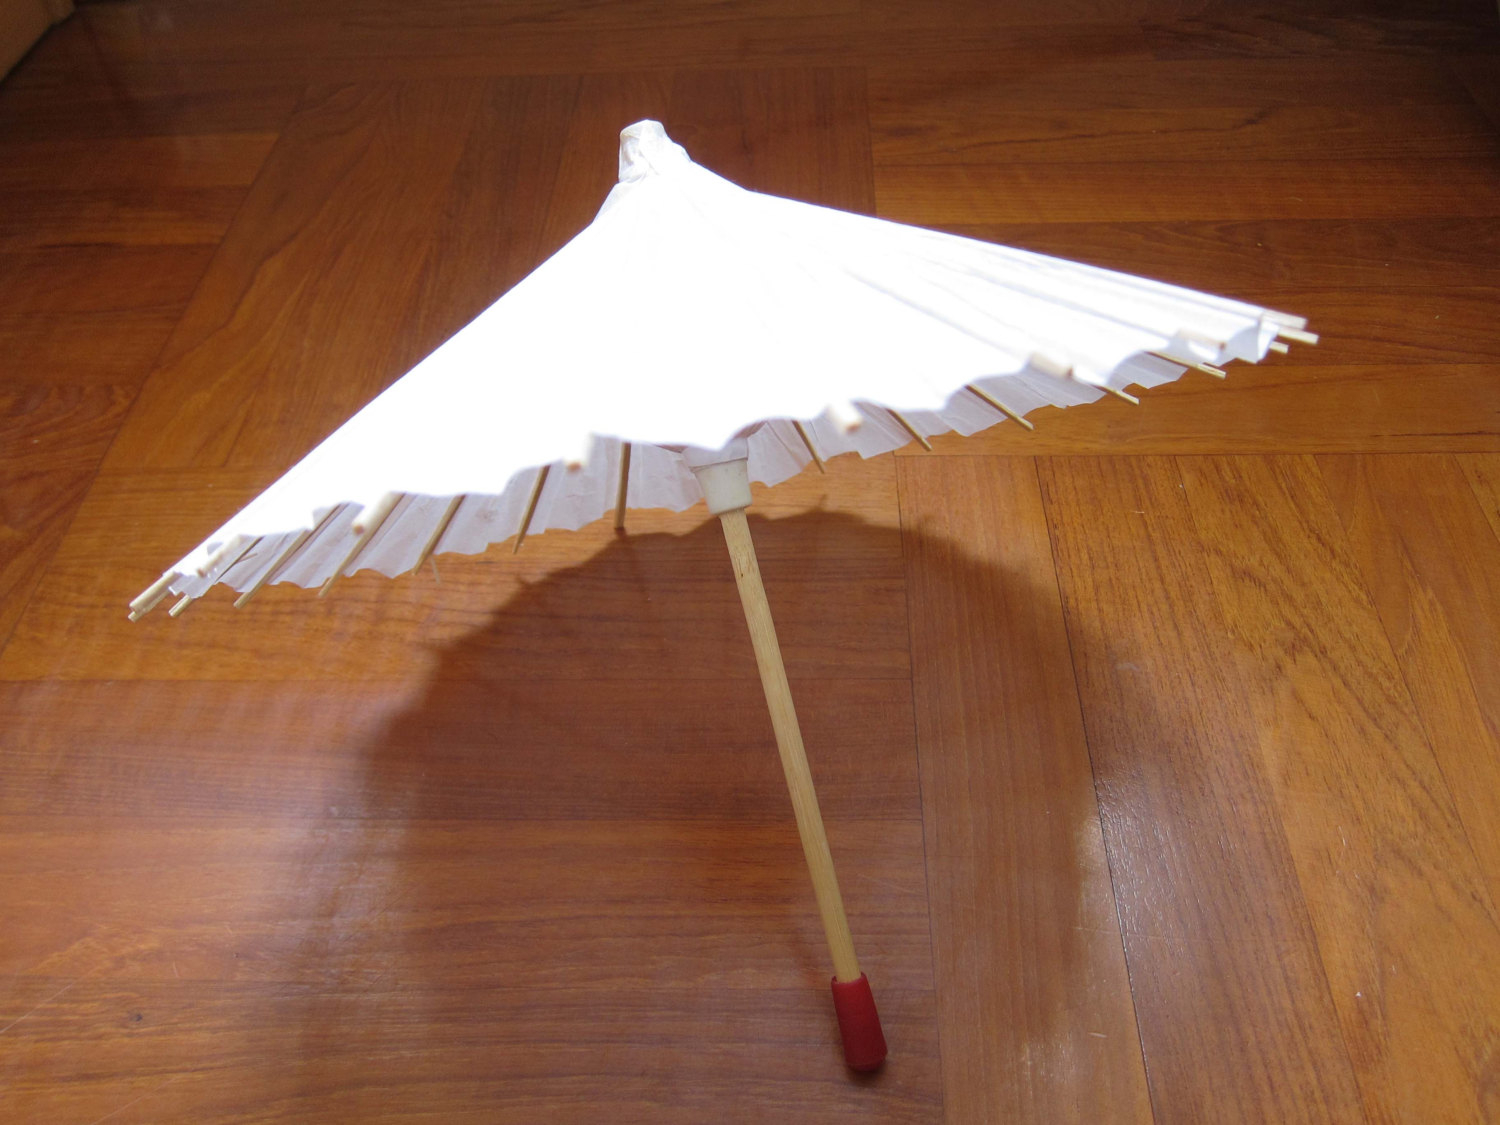 Create paper umbrella craft for party glass decor Diy White Paper Umbrella Kids Party Gifts Kids Craft Etsy